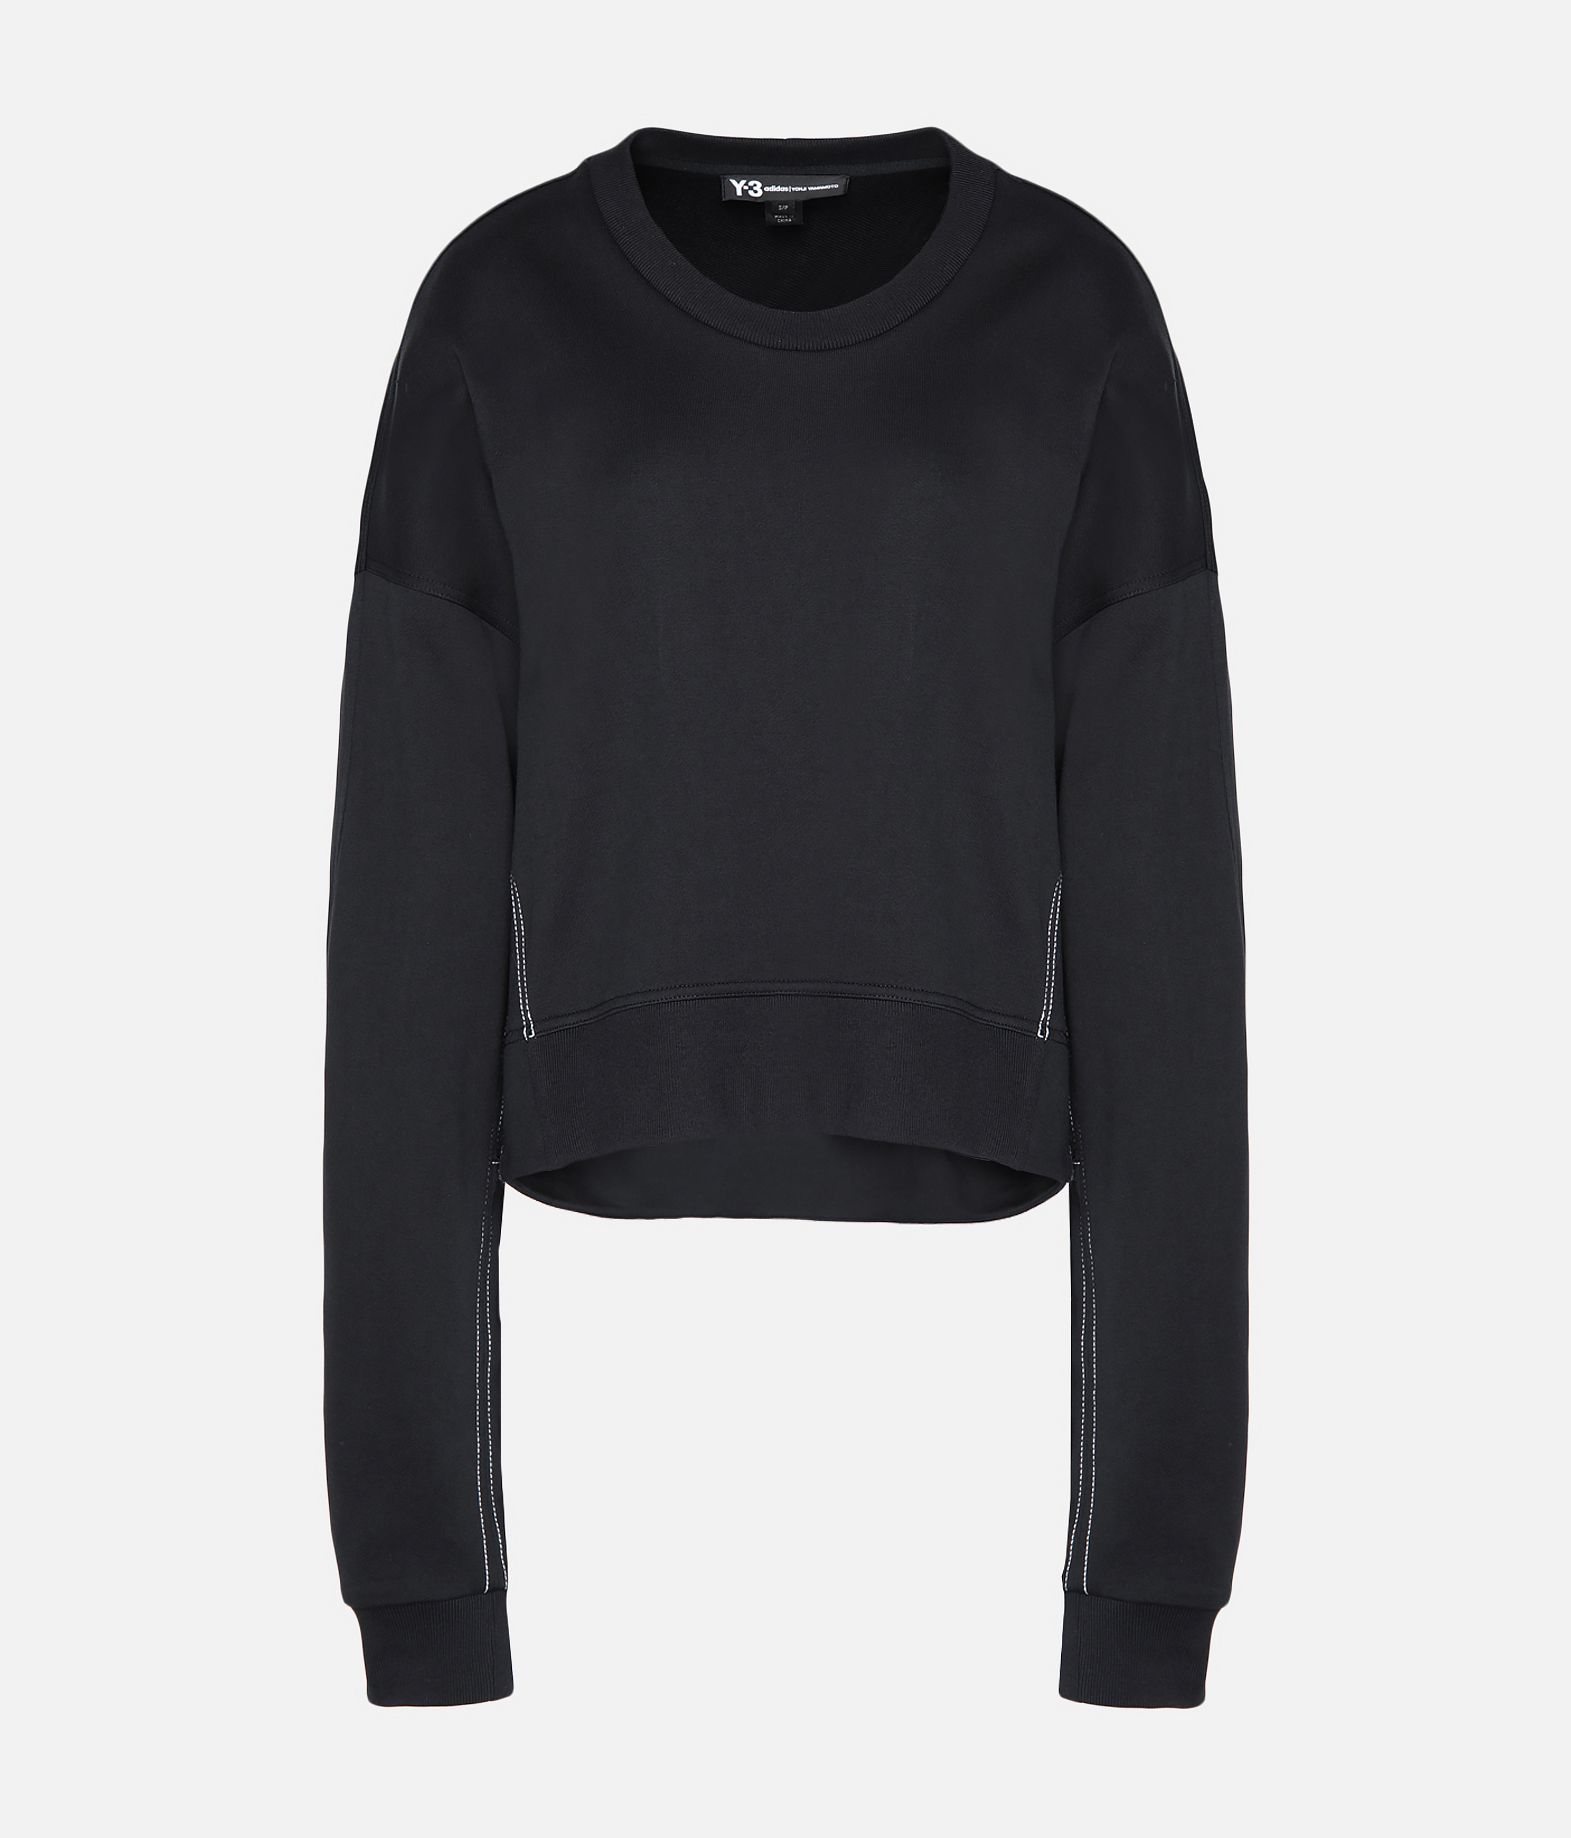 Y-3 Y-3 Yohji Love Sweater Sweatshirt Woman f